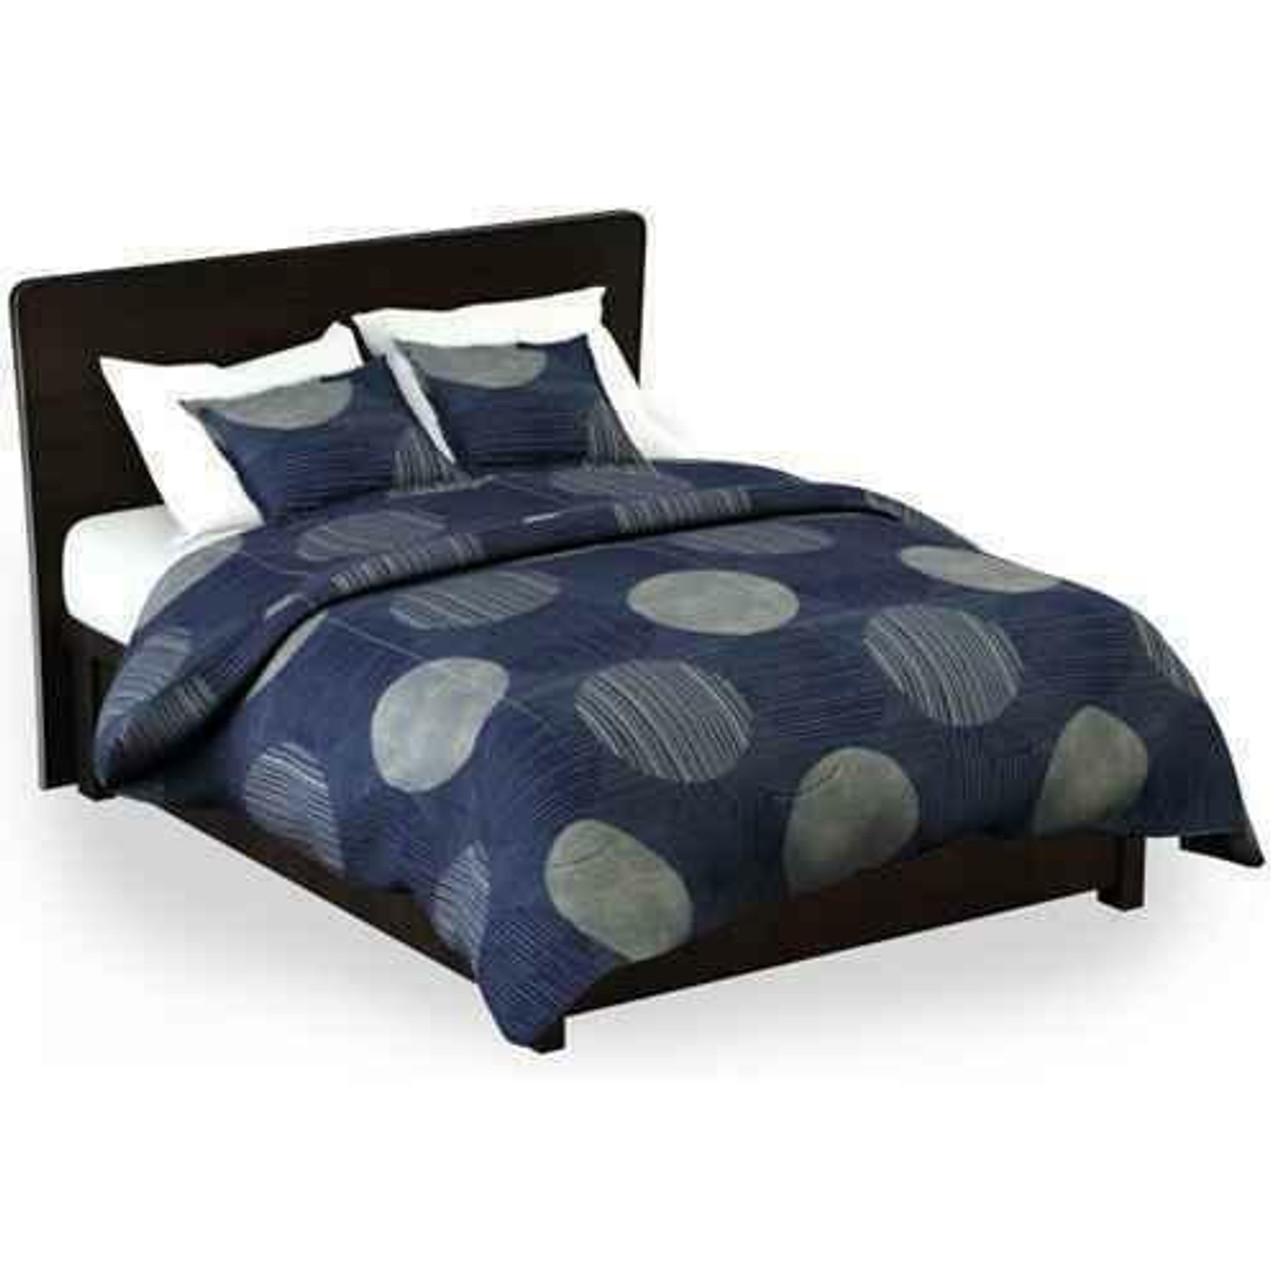 WestPoint/Martex Westpoint or Martex Rx or Pillow Sham or Circles and Stripes Sapphire or Pack Of 20-24